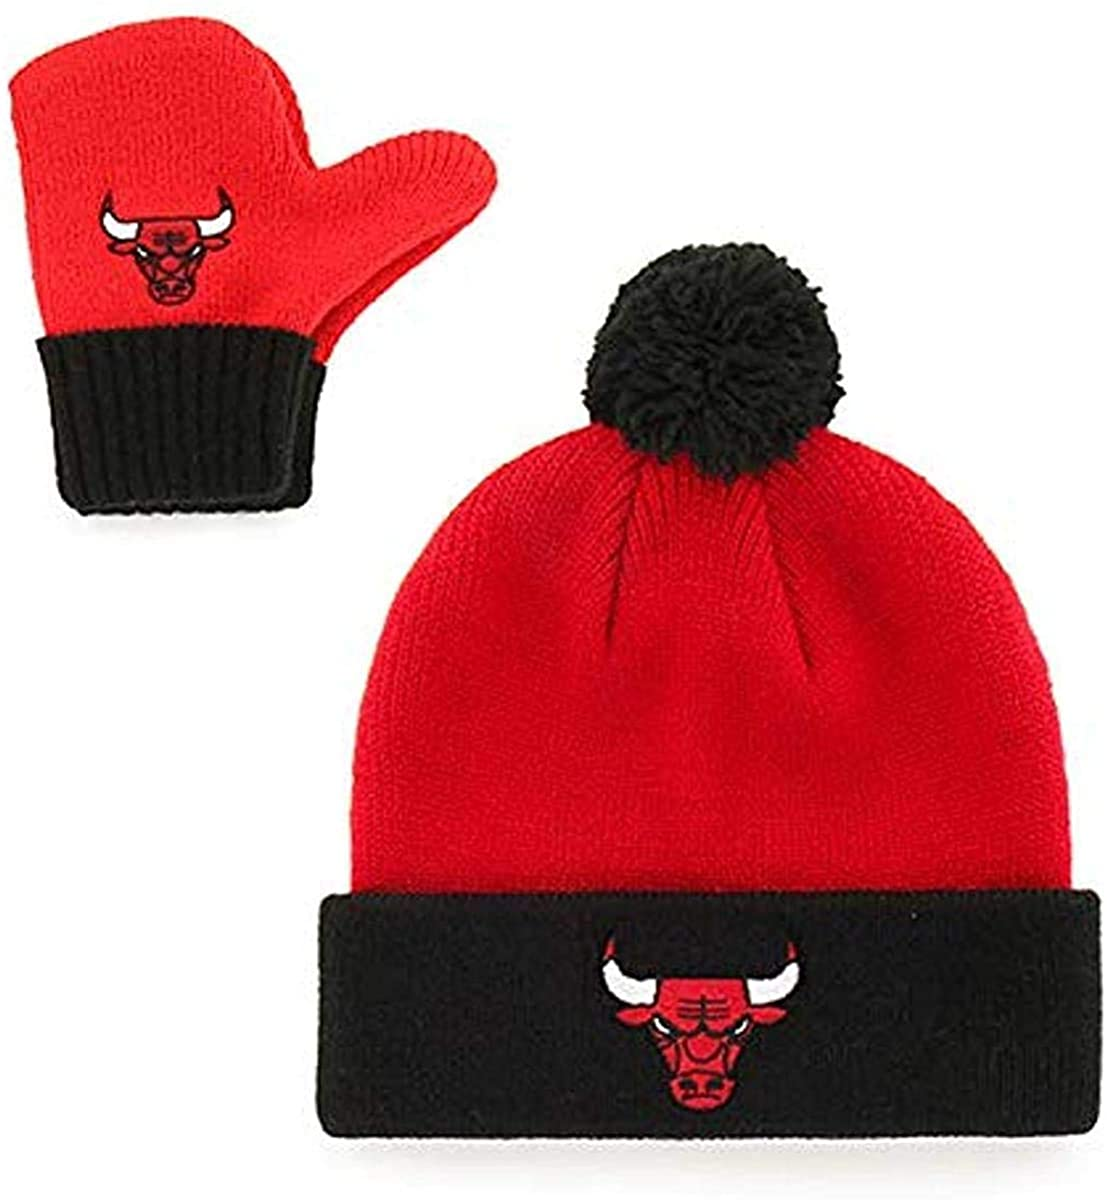 '47 Brand Infant/Toddler Bam Bam 2-Tone Beanie Hat POM and Glove Gift Combo - NBA Baby Knit Cap/Mittens